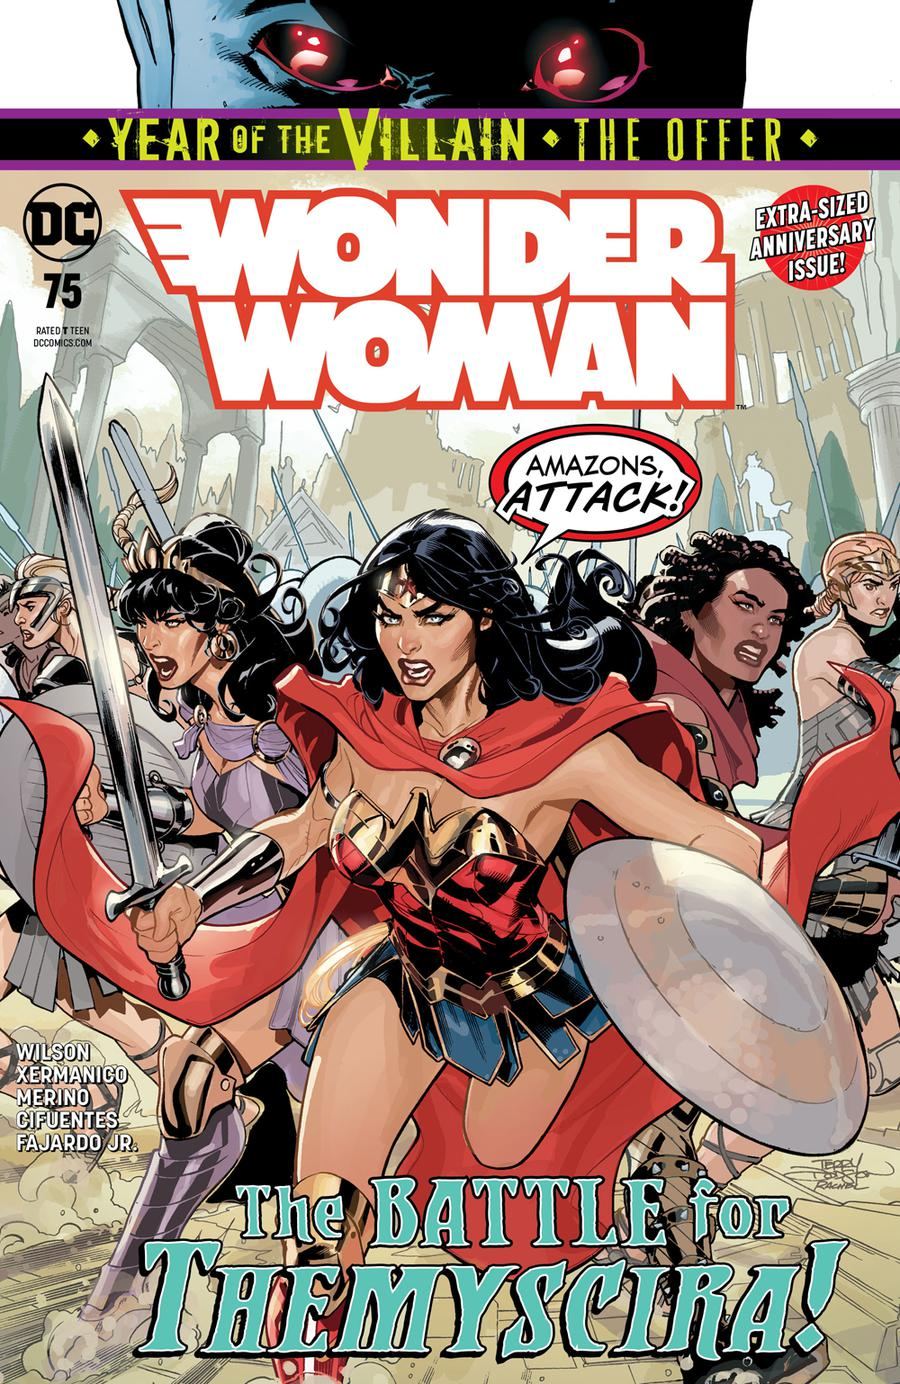 Wonder Woman Vol 5 #75 Cover A Regular Terry Dodson & Rachel Dodson Cover (Year Of The Villain The Offer Tie-In)